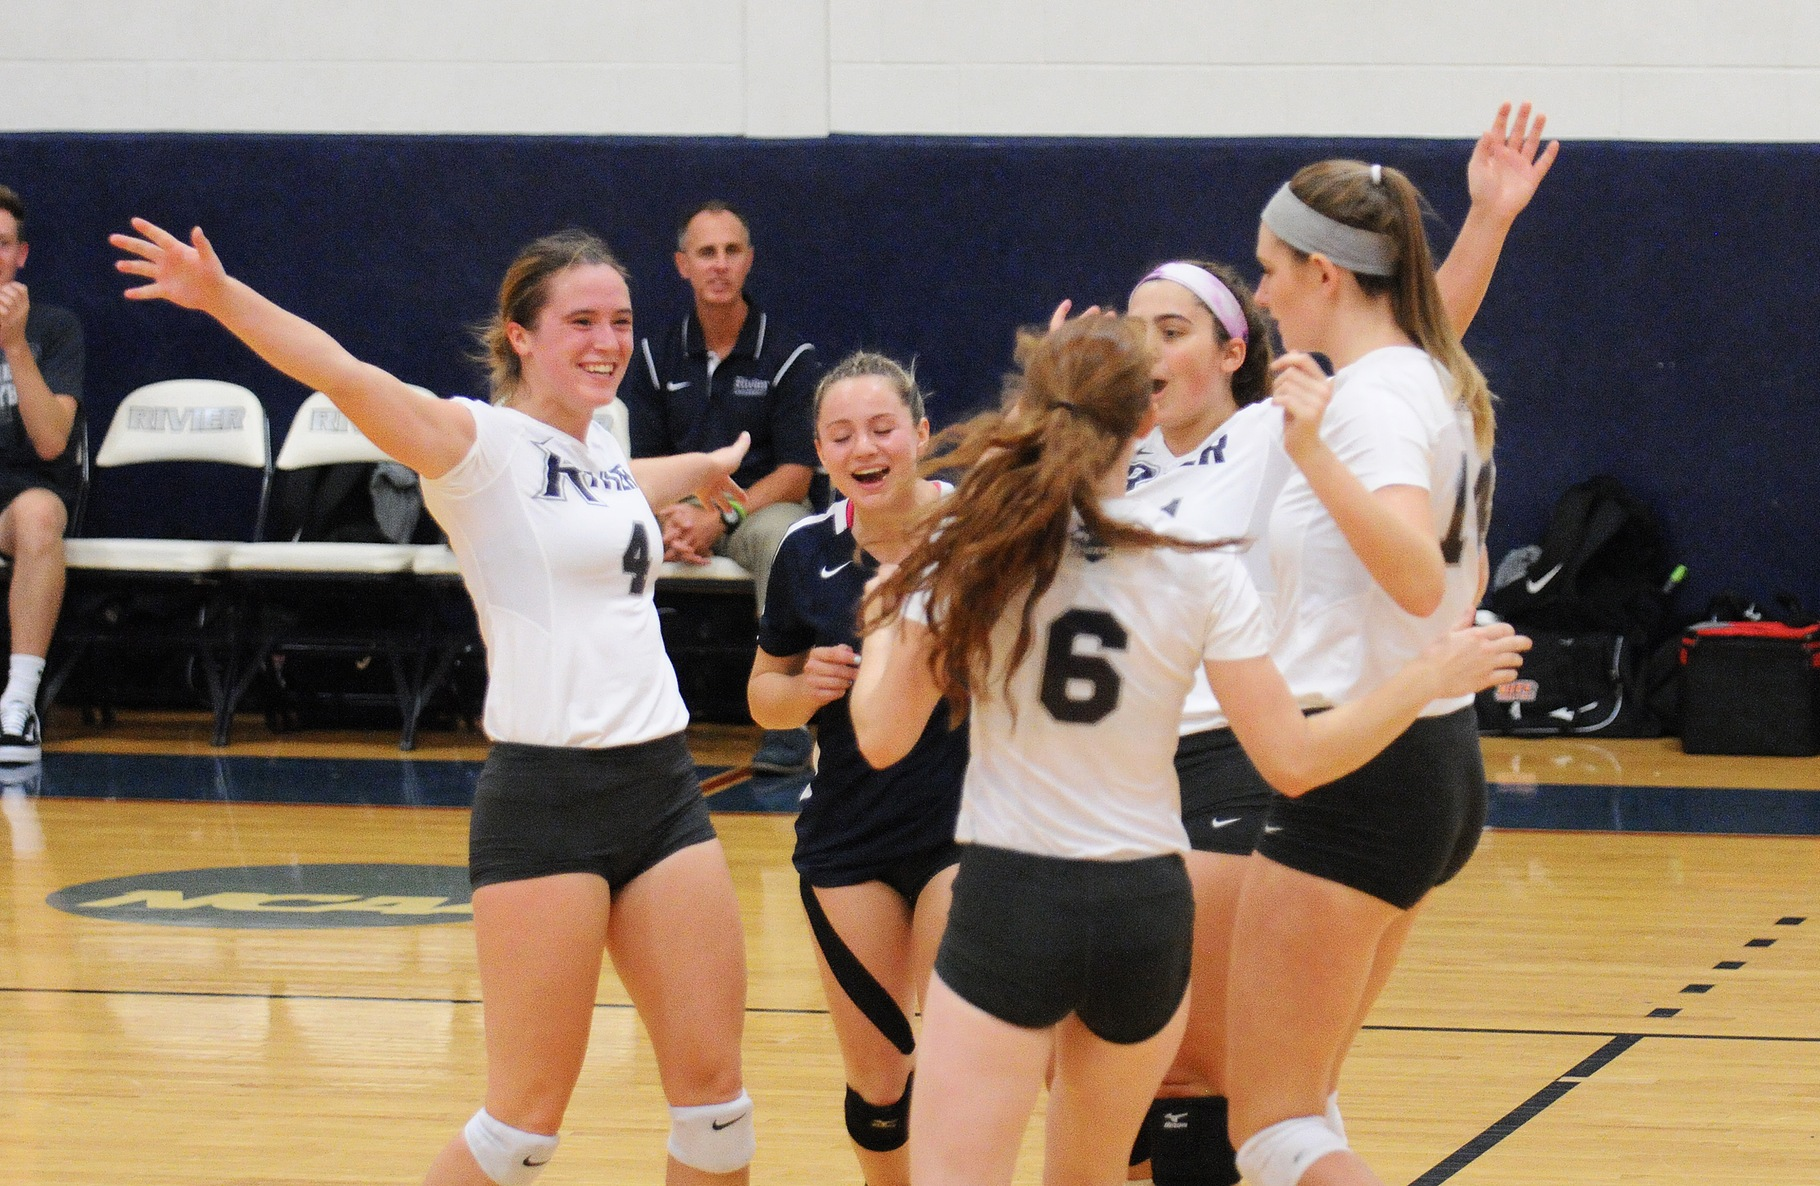 Women's Volleyball: Raiders roll past Salem State, 3-0